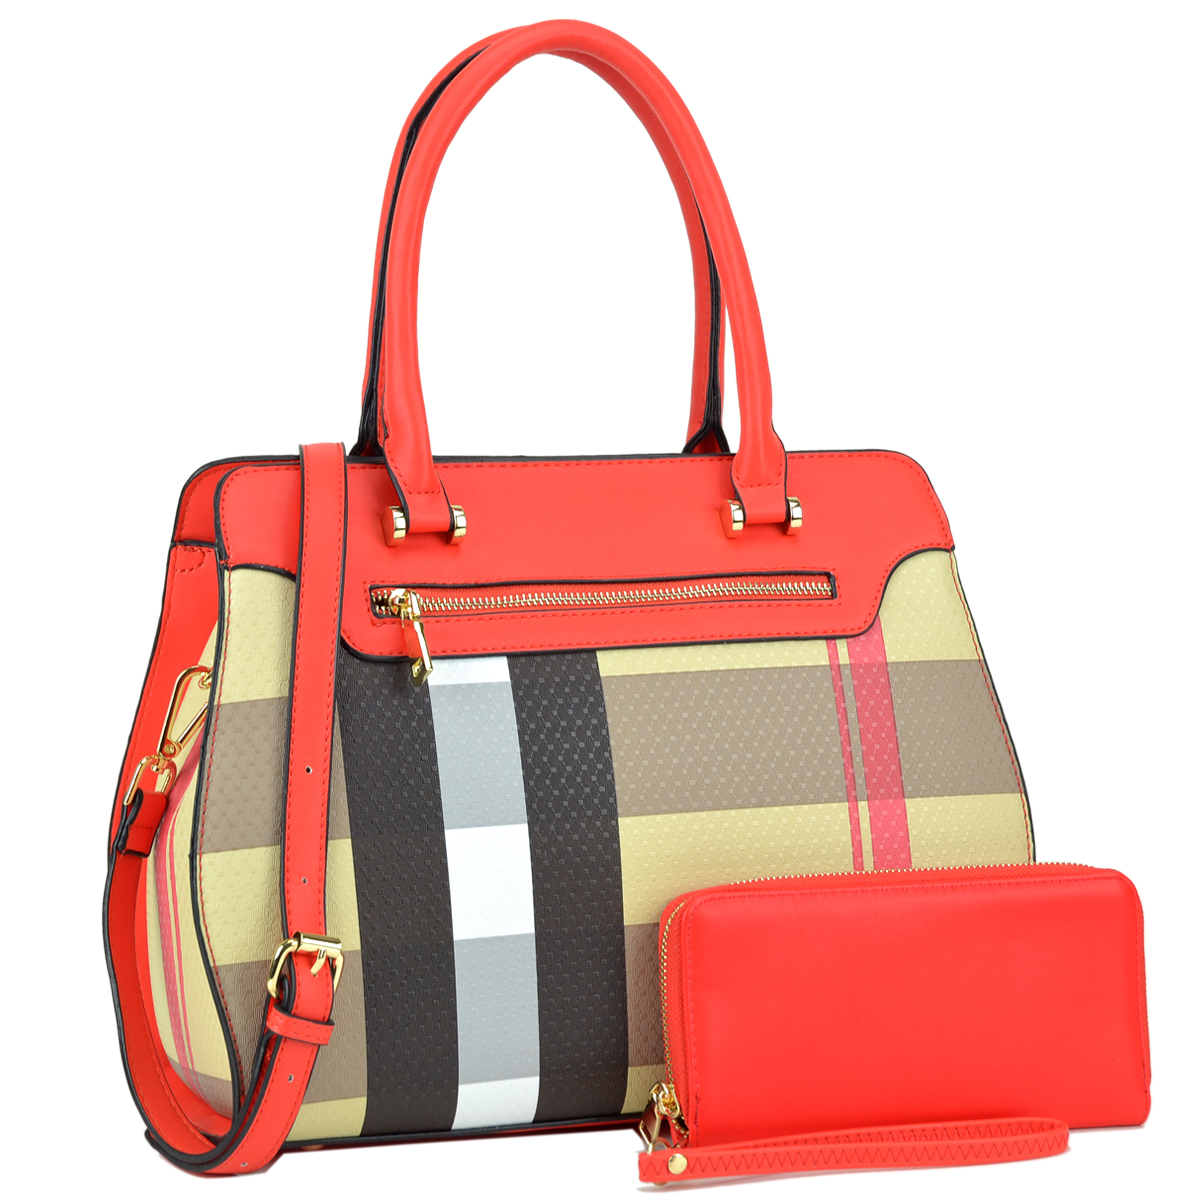 Plaid Design Faux Leather Medium Satchel with Matching Wallet